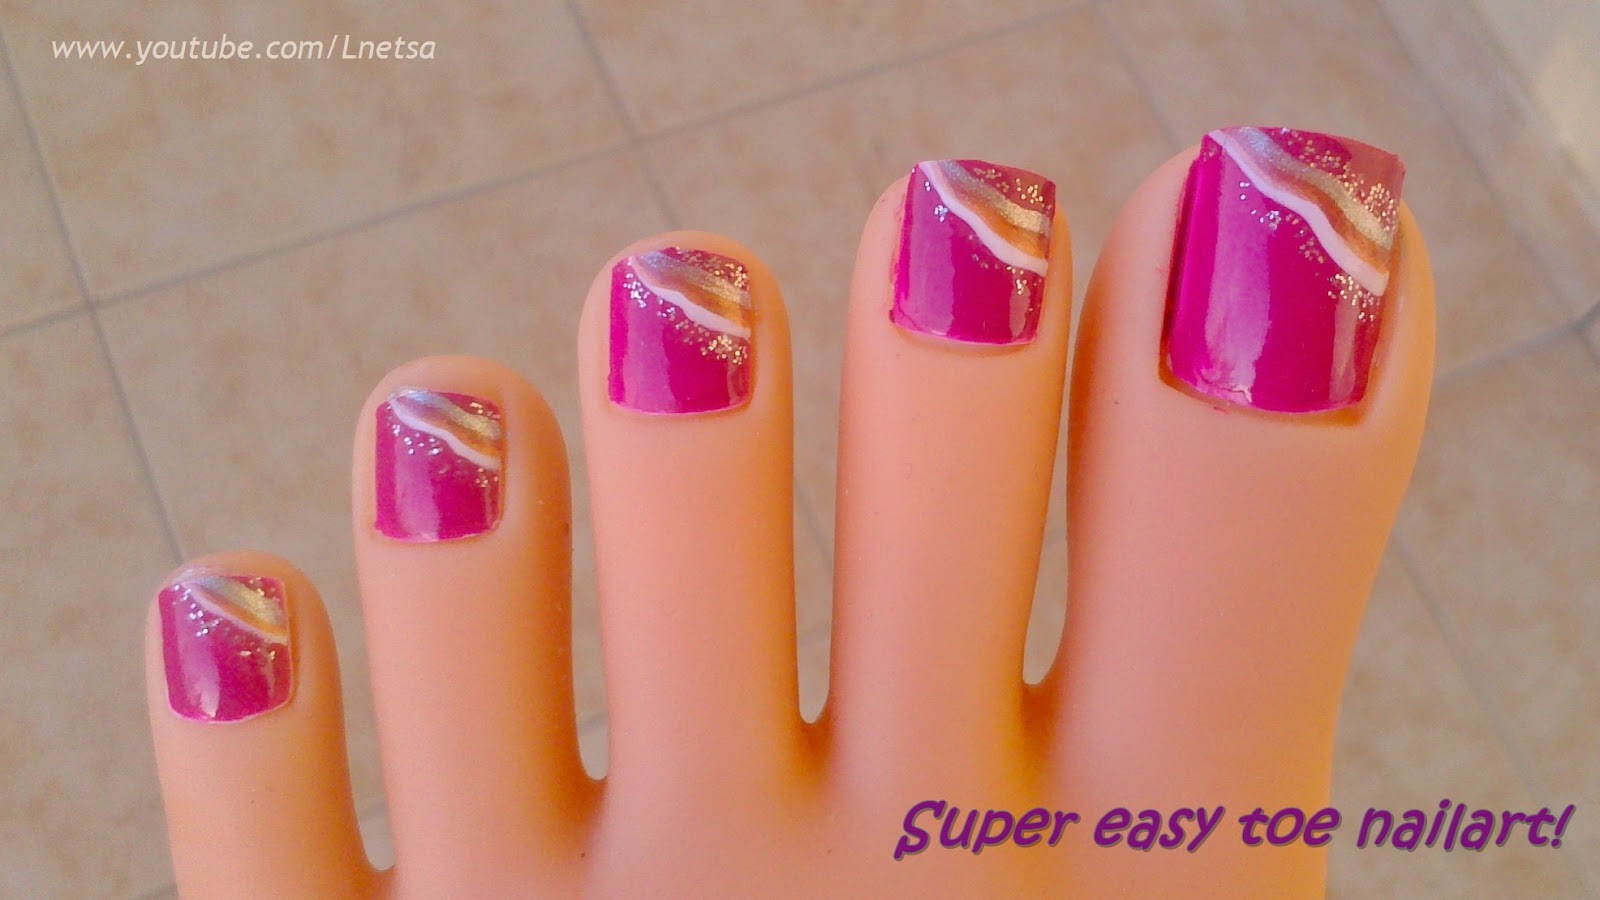 Lnetsa S Nailart Super Easy Toe Nailart